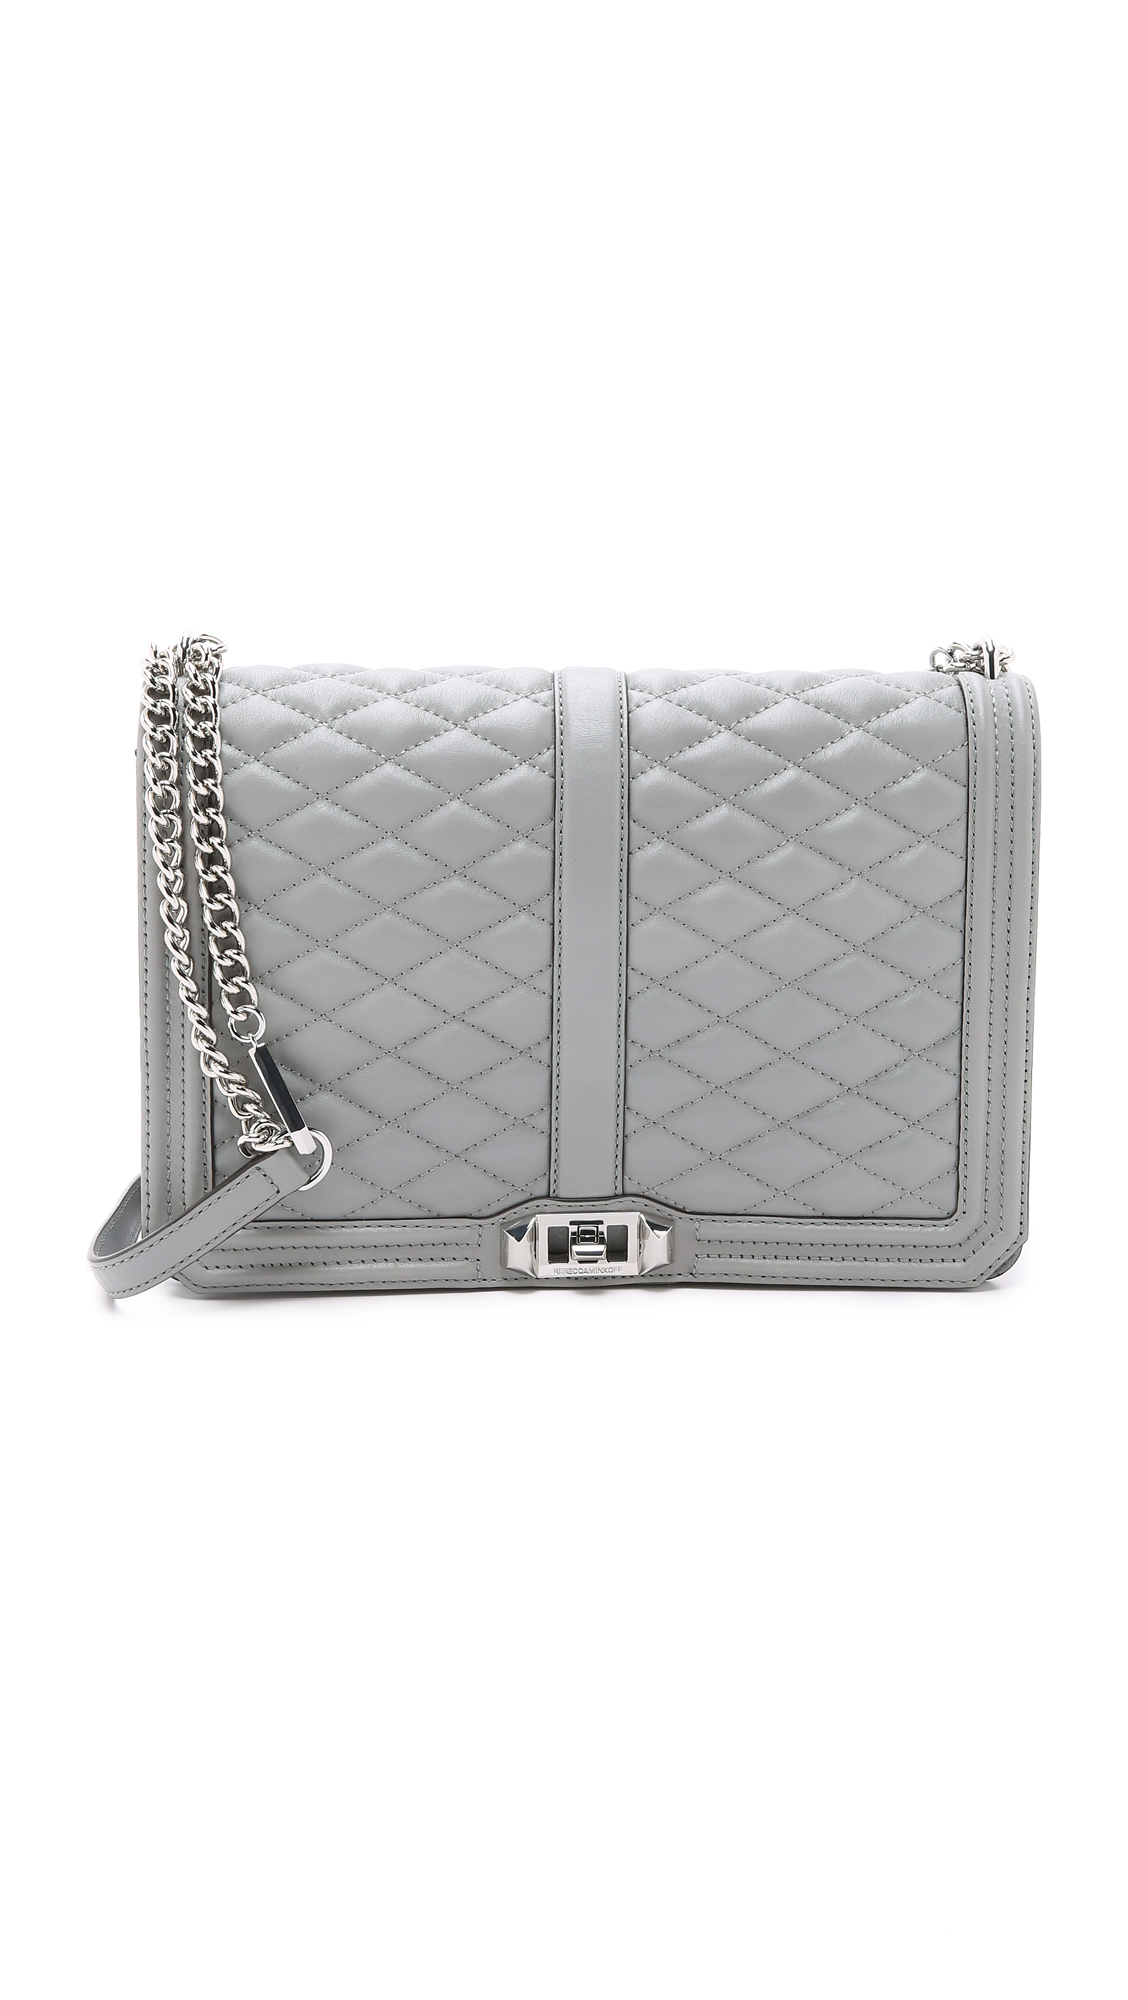 54e67d64b Rebecca Minkoff Quilted Love Jumbo Leather Crossbody Bag In Charcoal ...